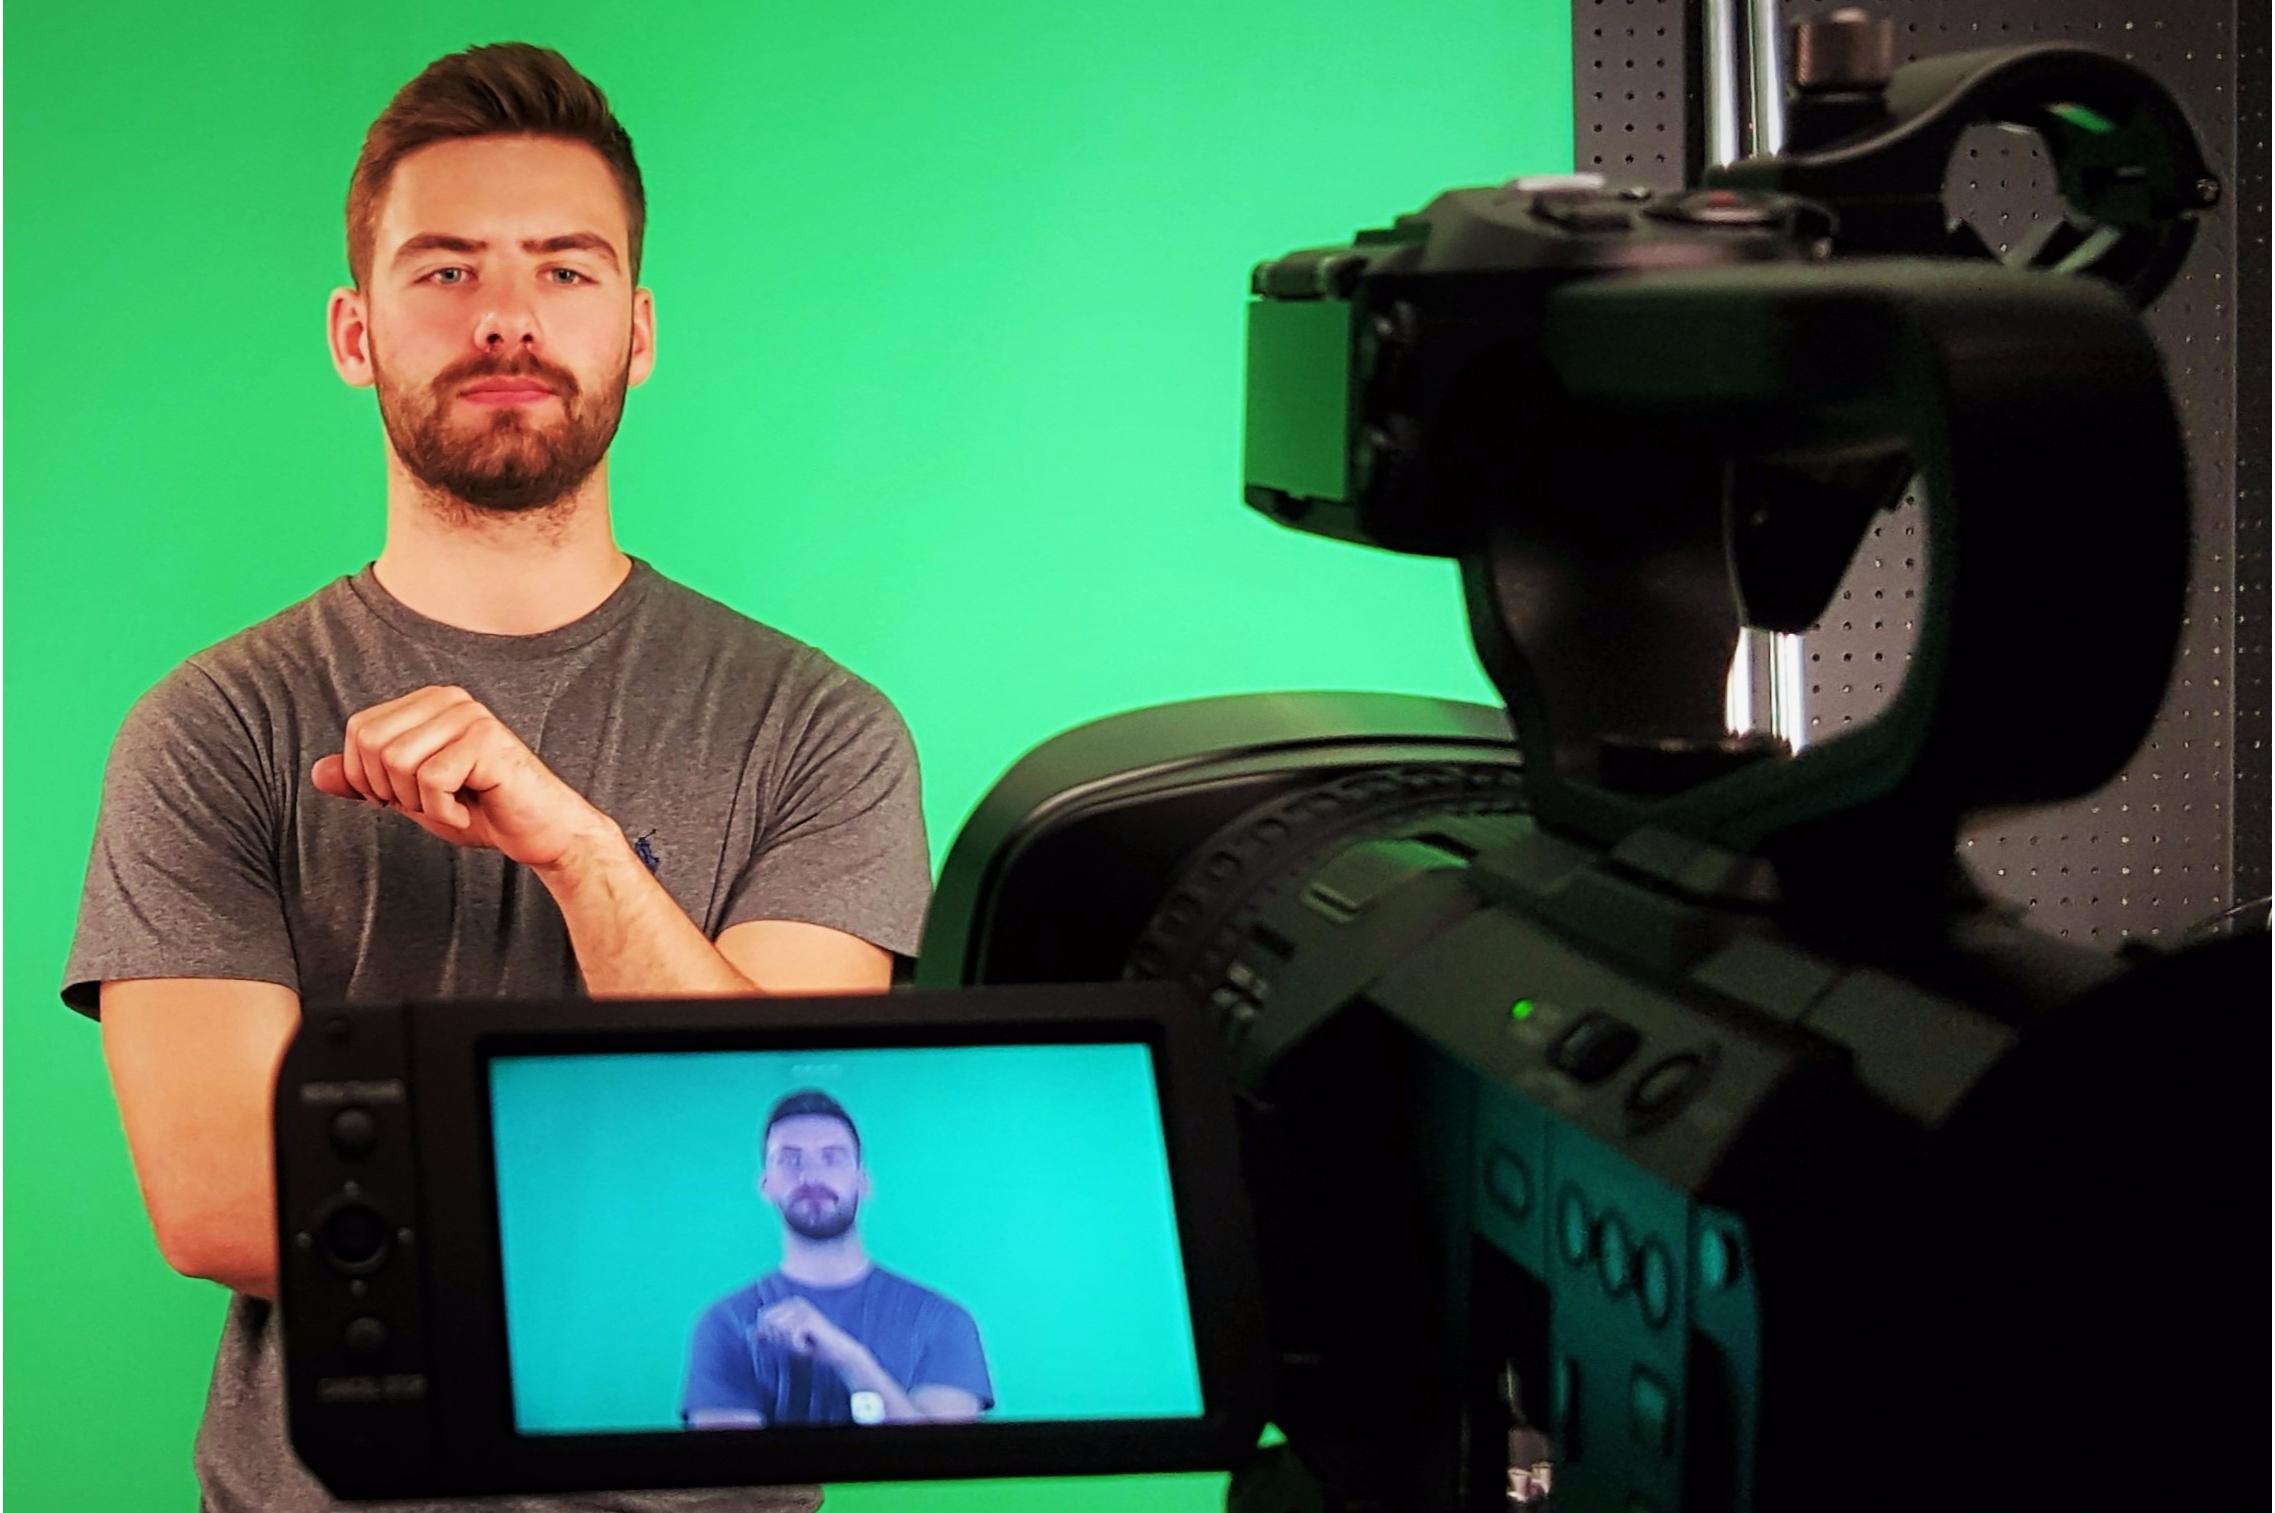 chroma key green screen studio